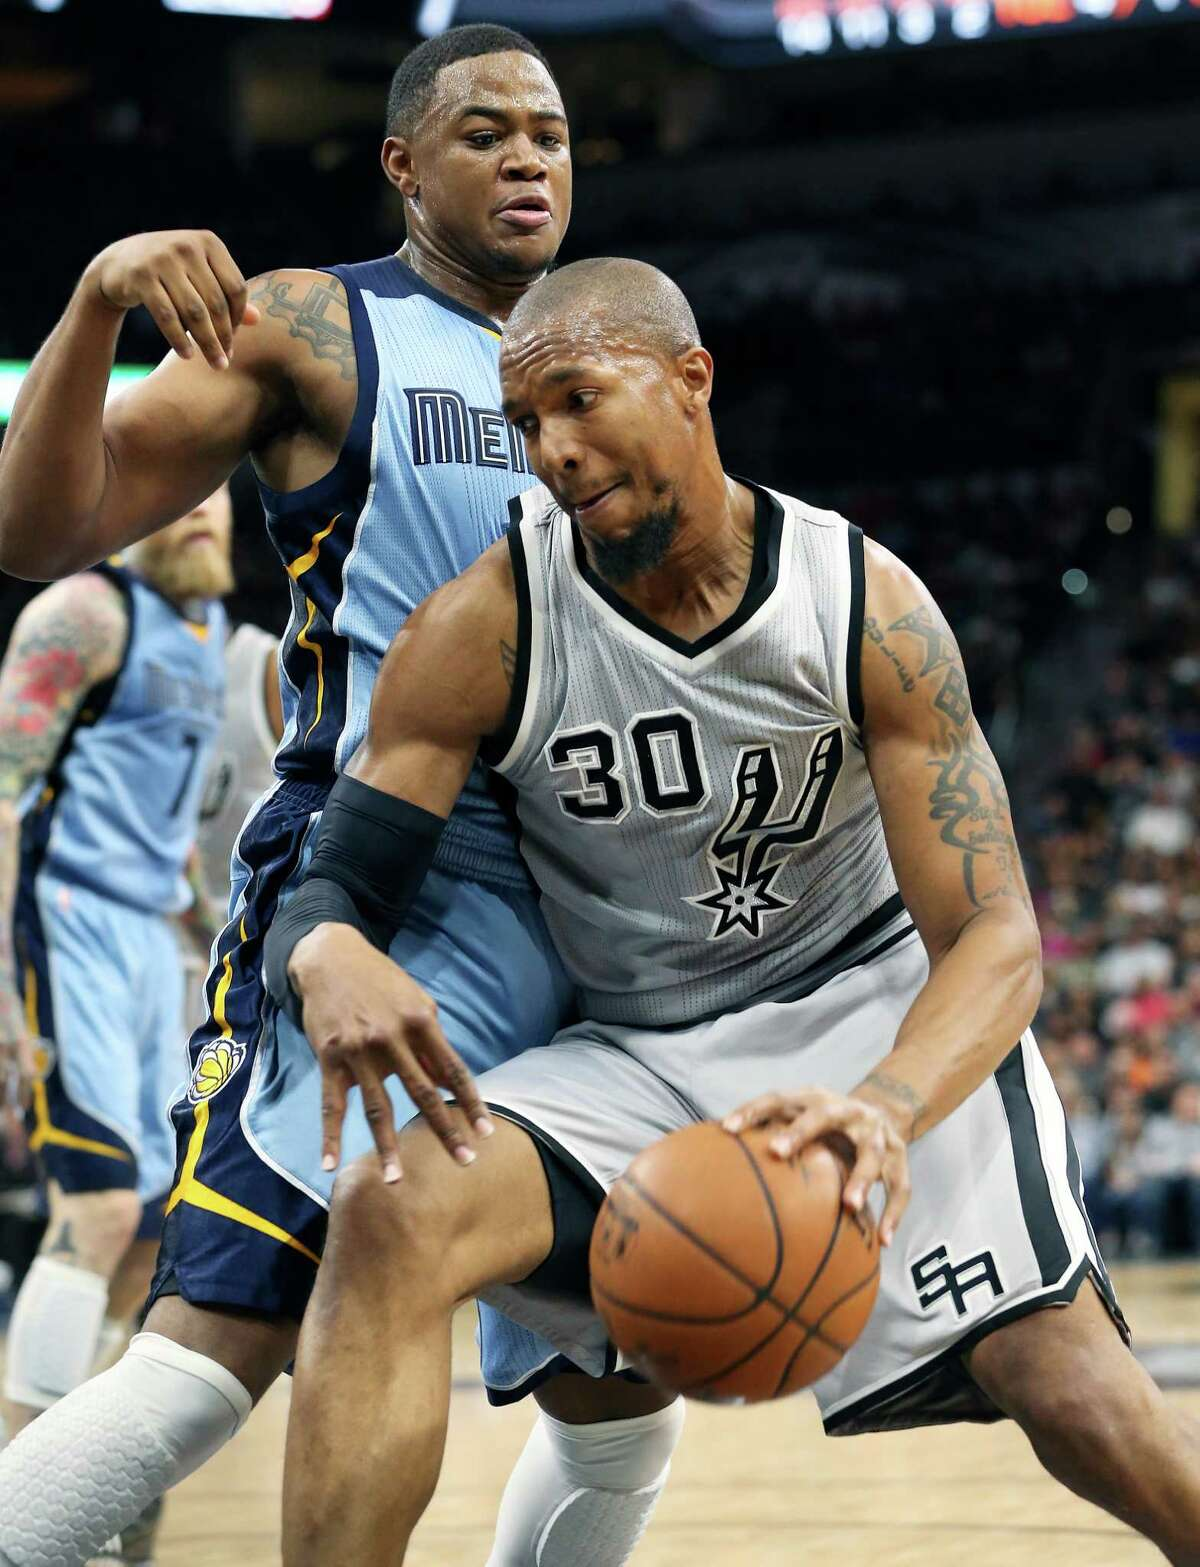 David West pivots in the lane as the Spurs host the Grizzlies at the AT&T Center on March 25, 2016.